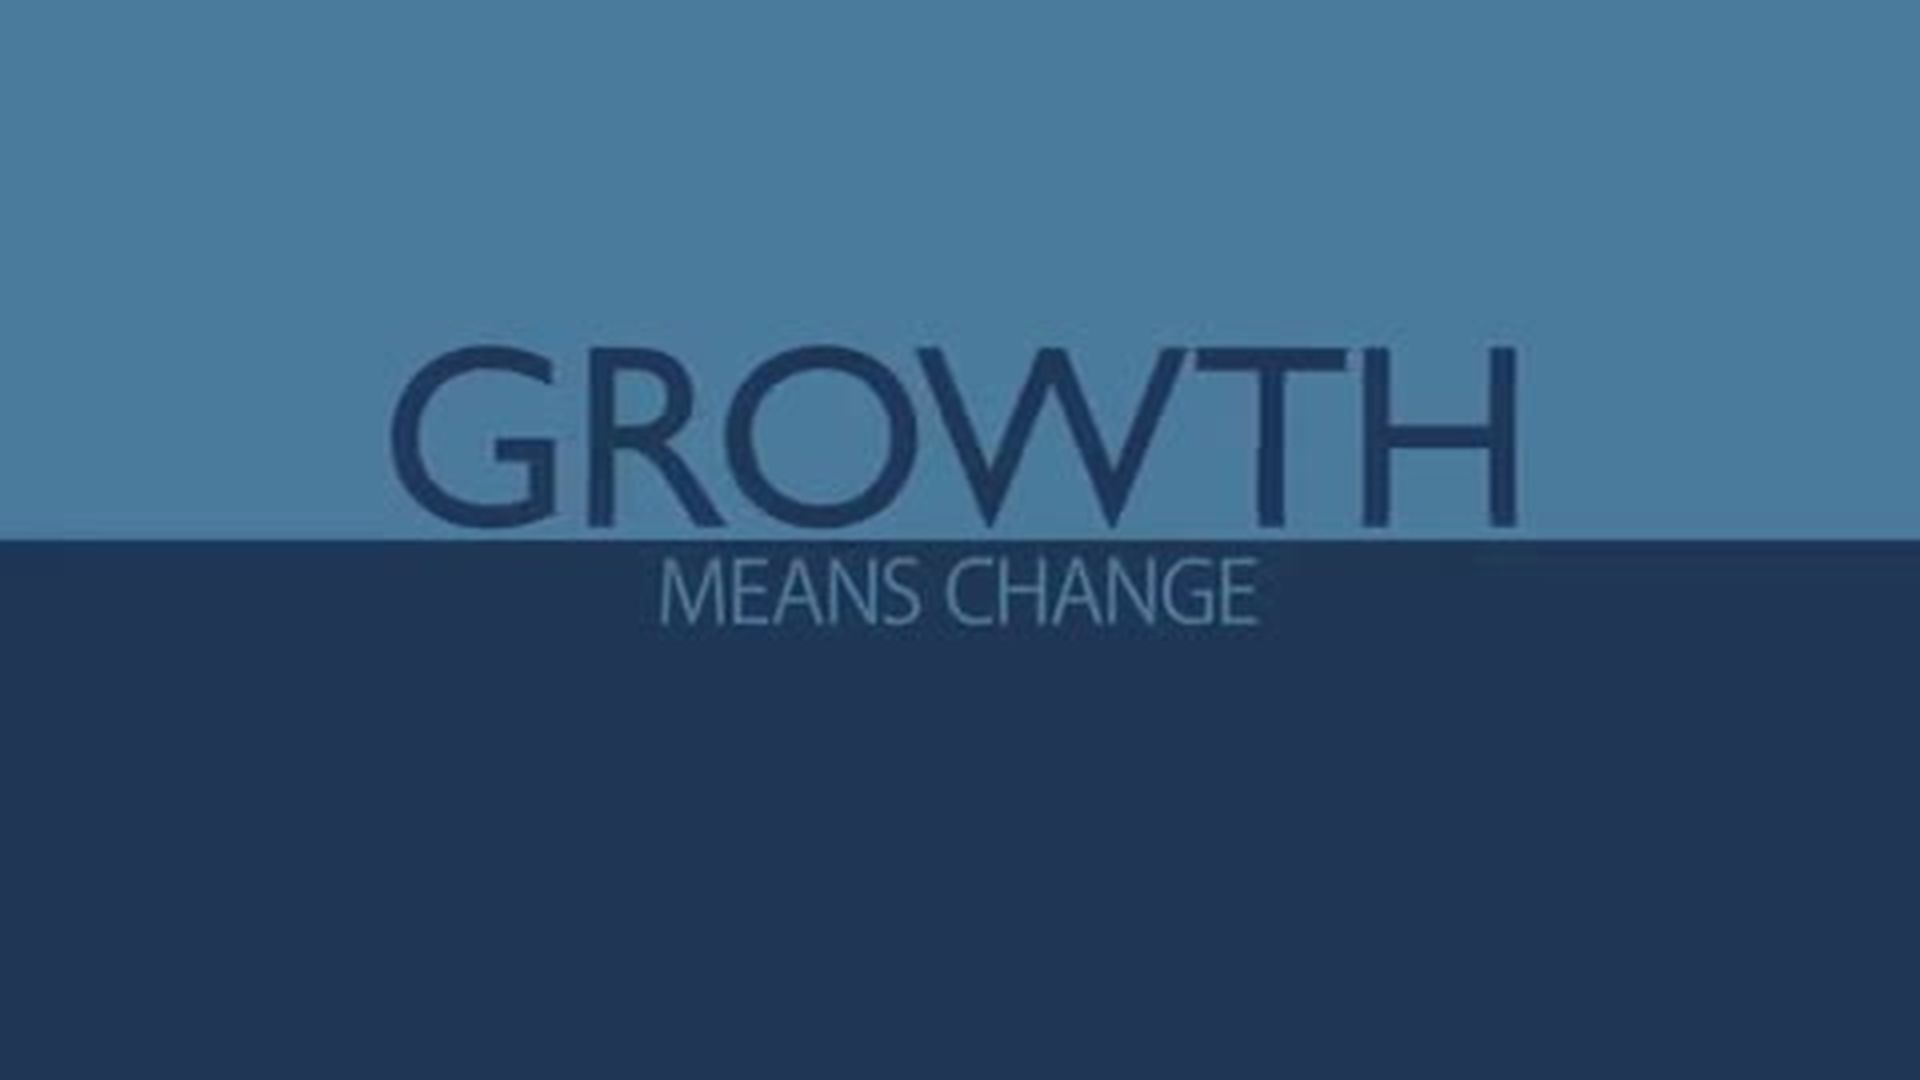 Growth Means Change